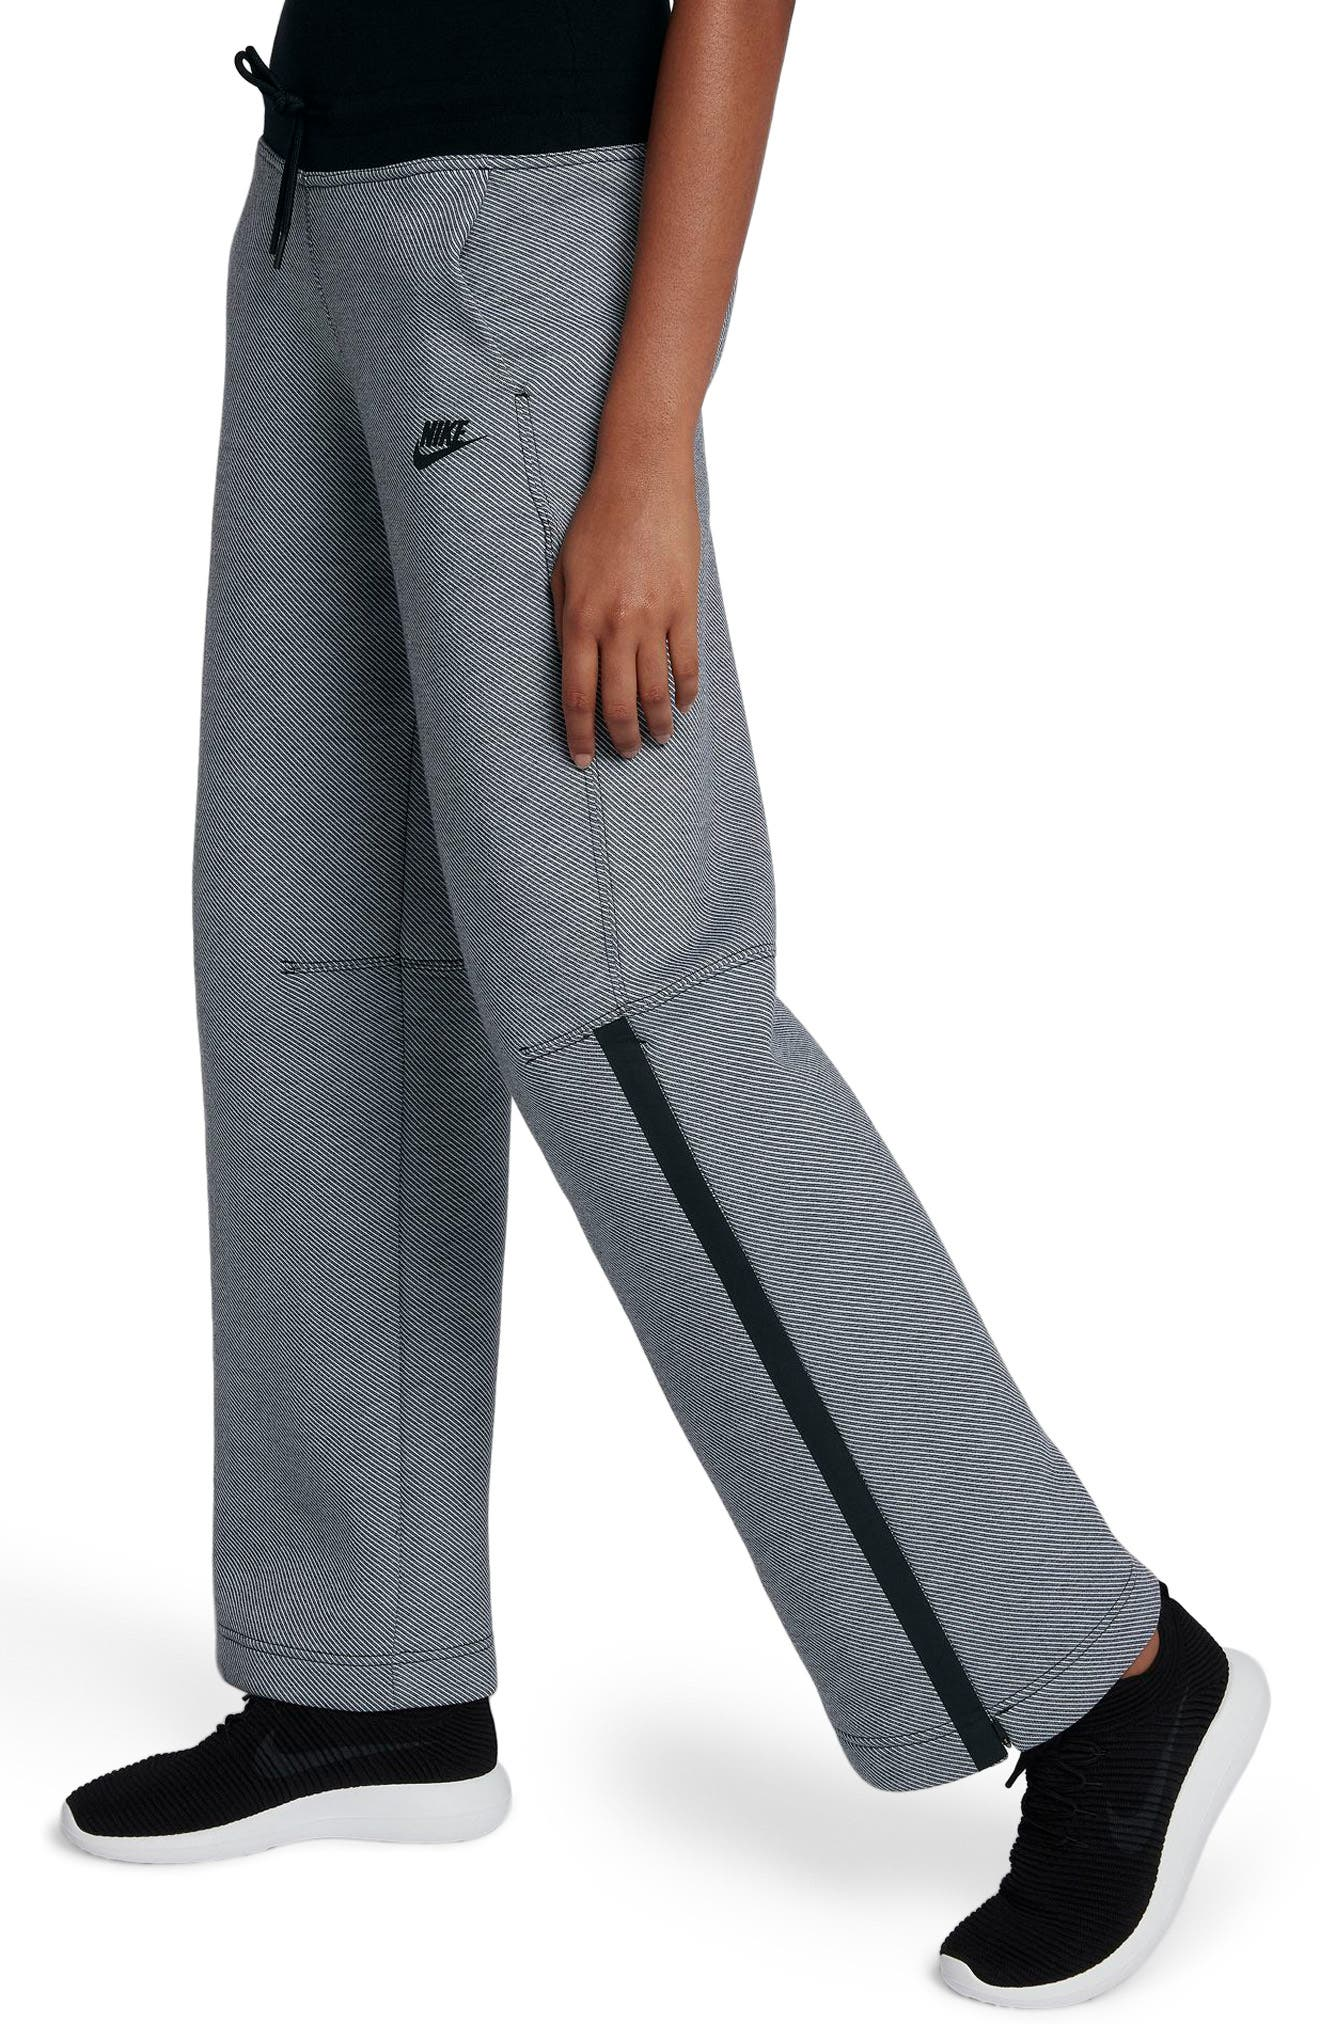 Drawstring Technical Pants,                             Alternate thumbnail 3, color,                             010